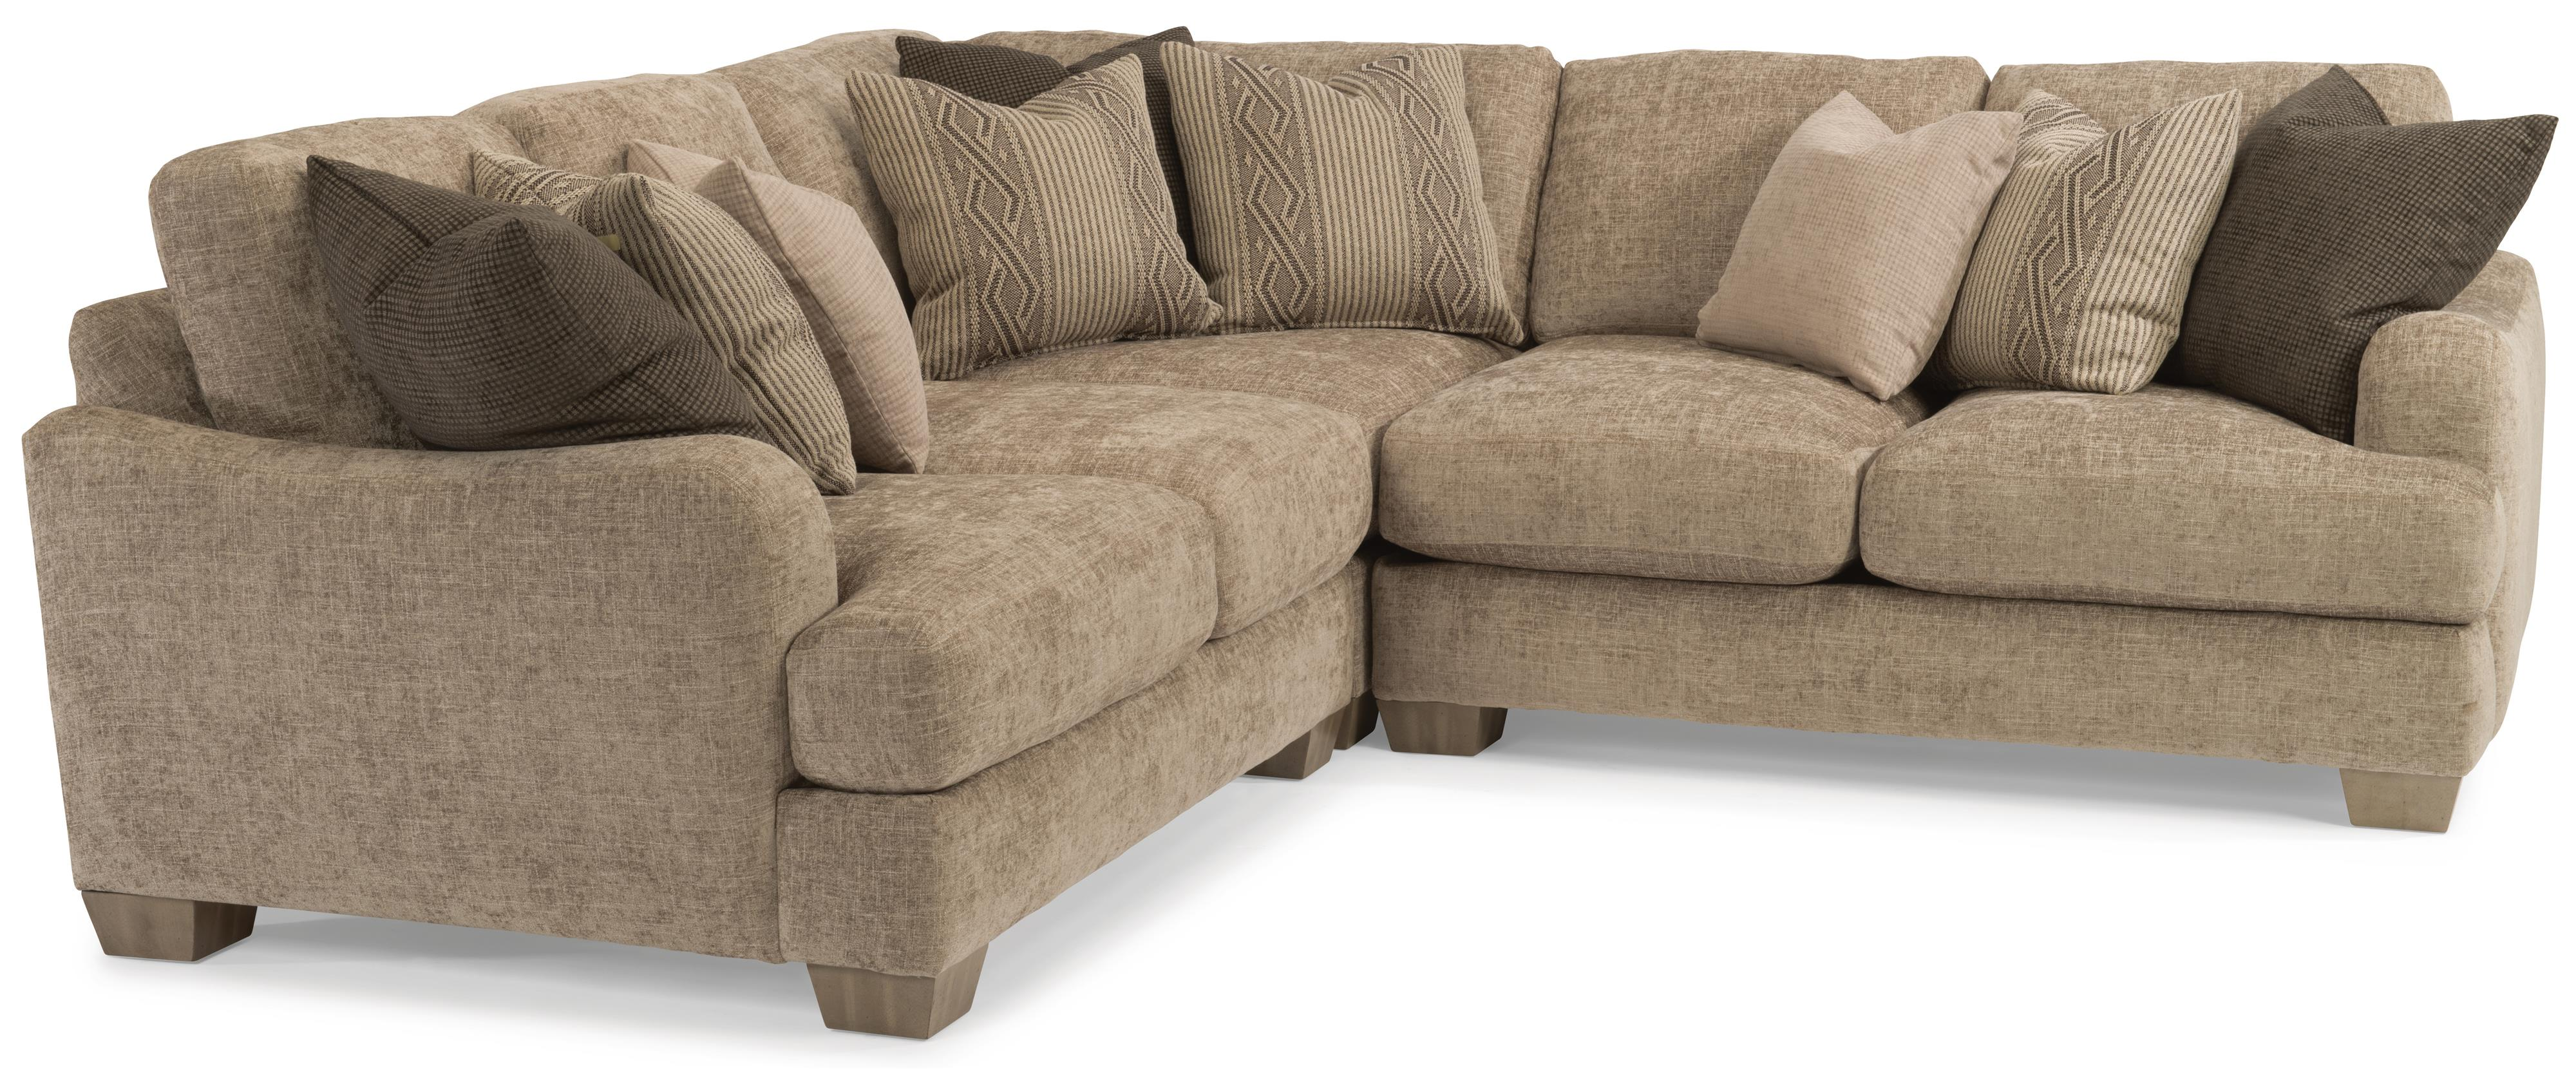 couches double sofas lms sof sofa wayside collections furniture item reclining couch flexsteel chicago